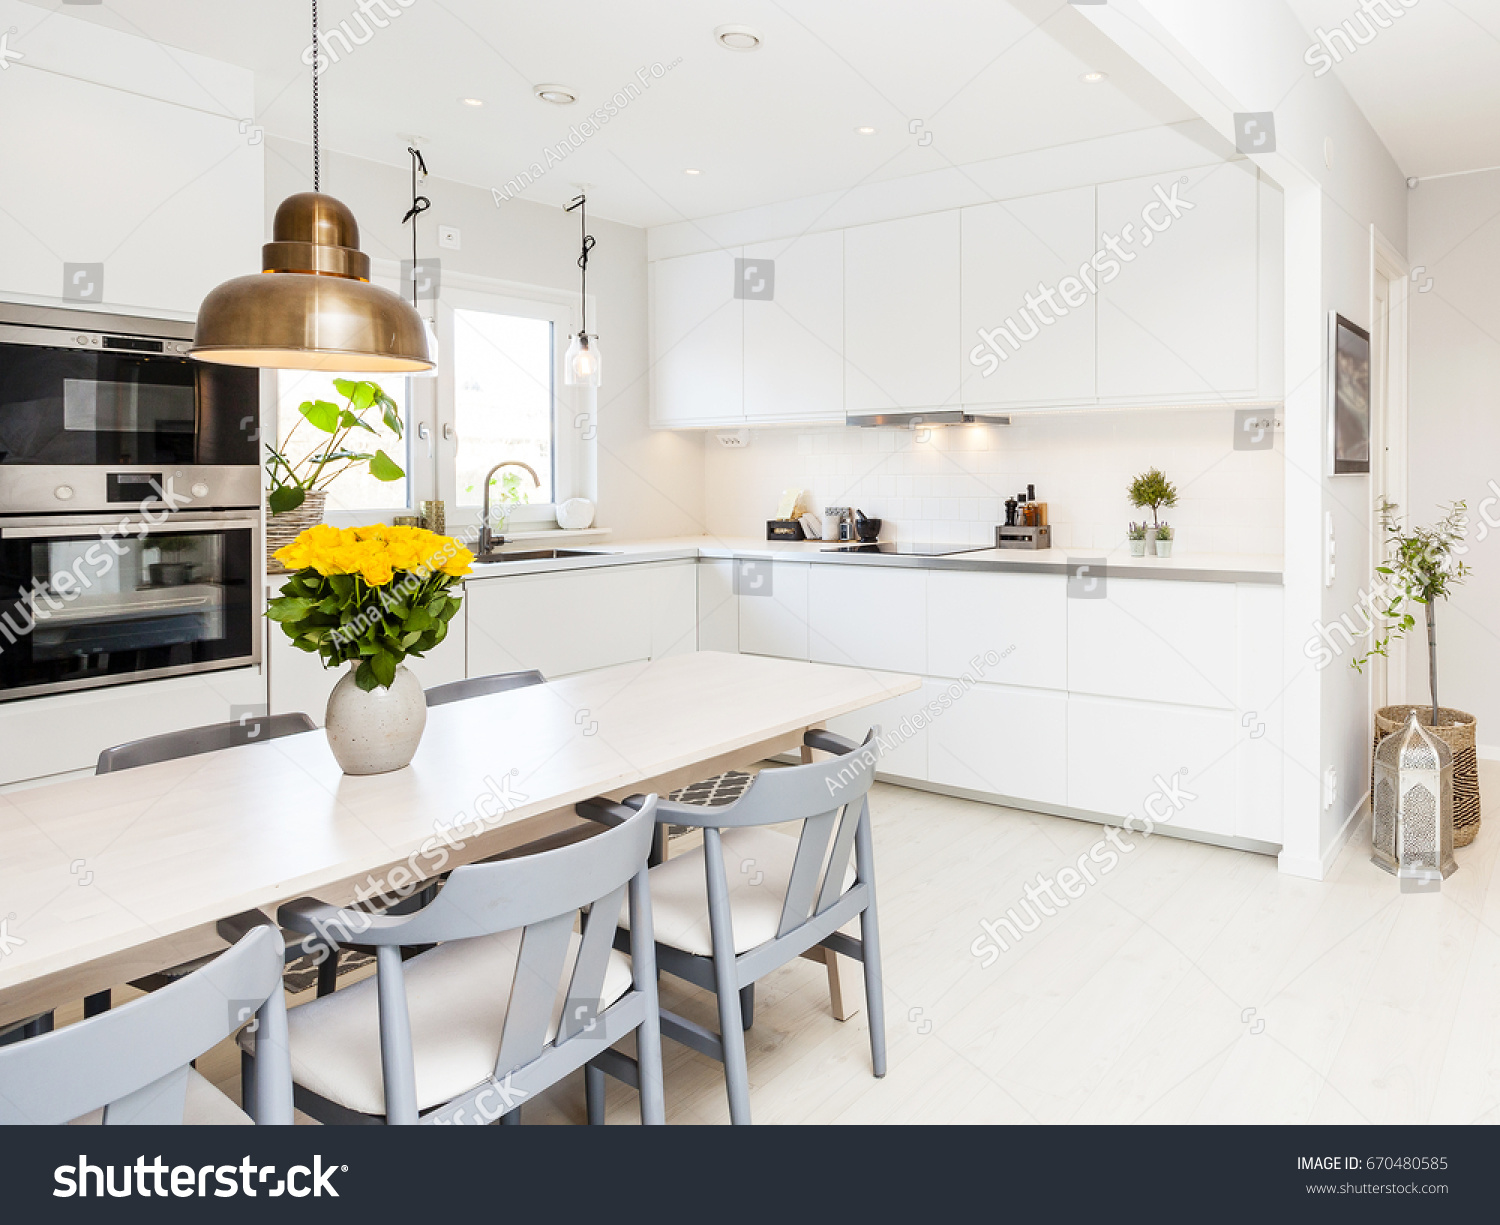 Fancy Kitchen Interior Grey Chairs Bay Stock Photo (Royalty Free ...